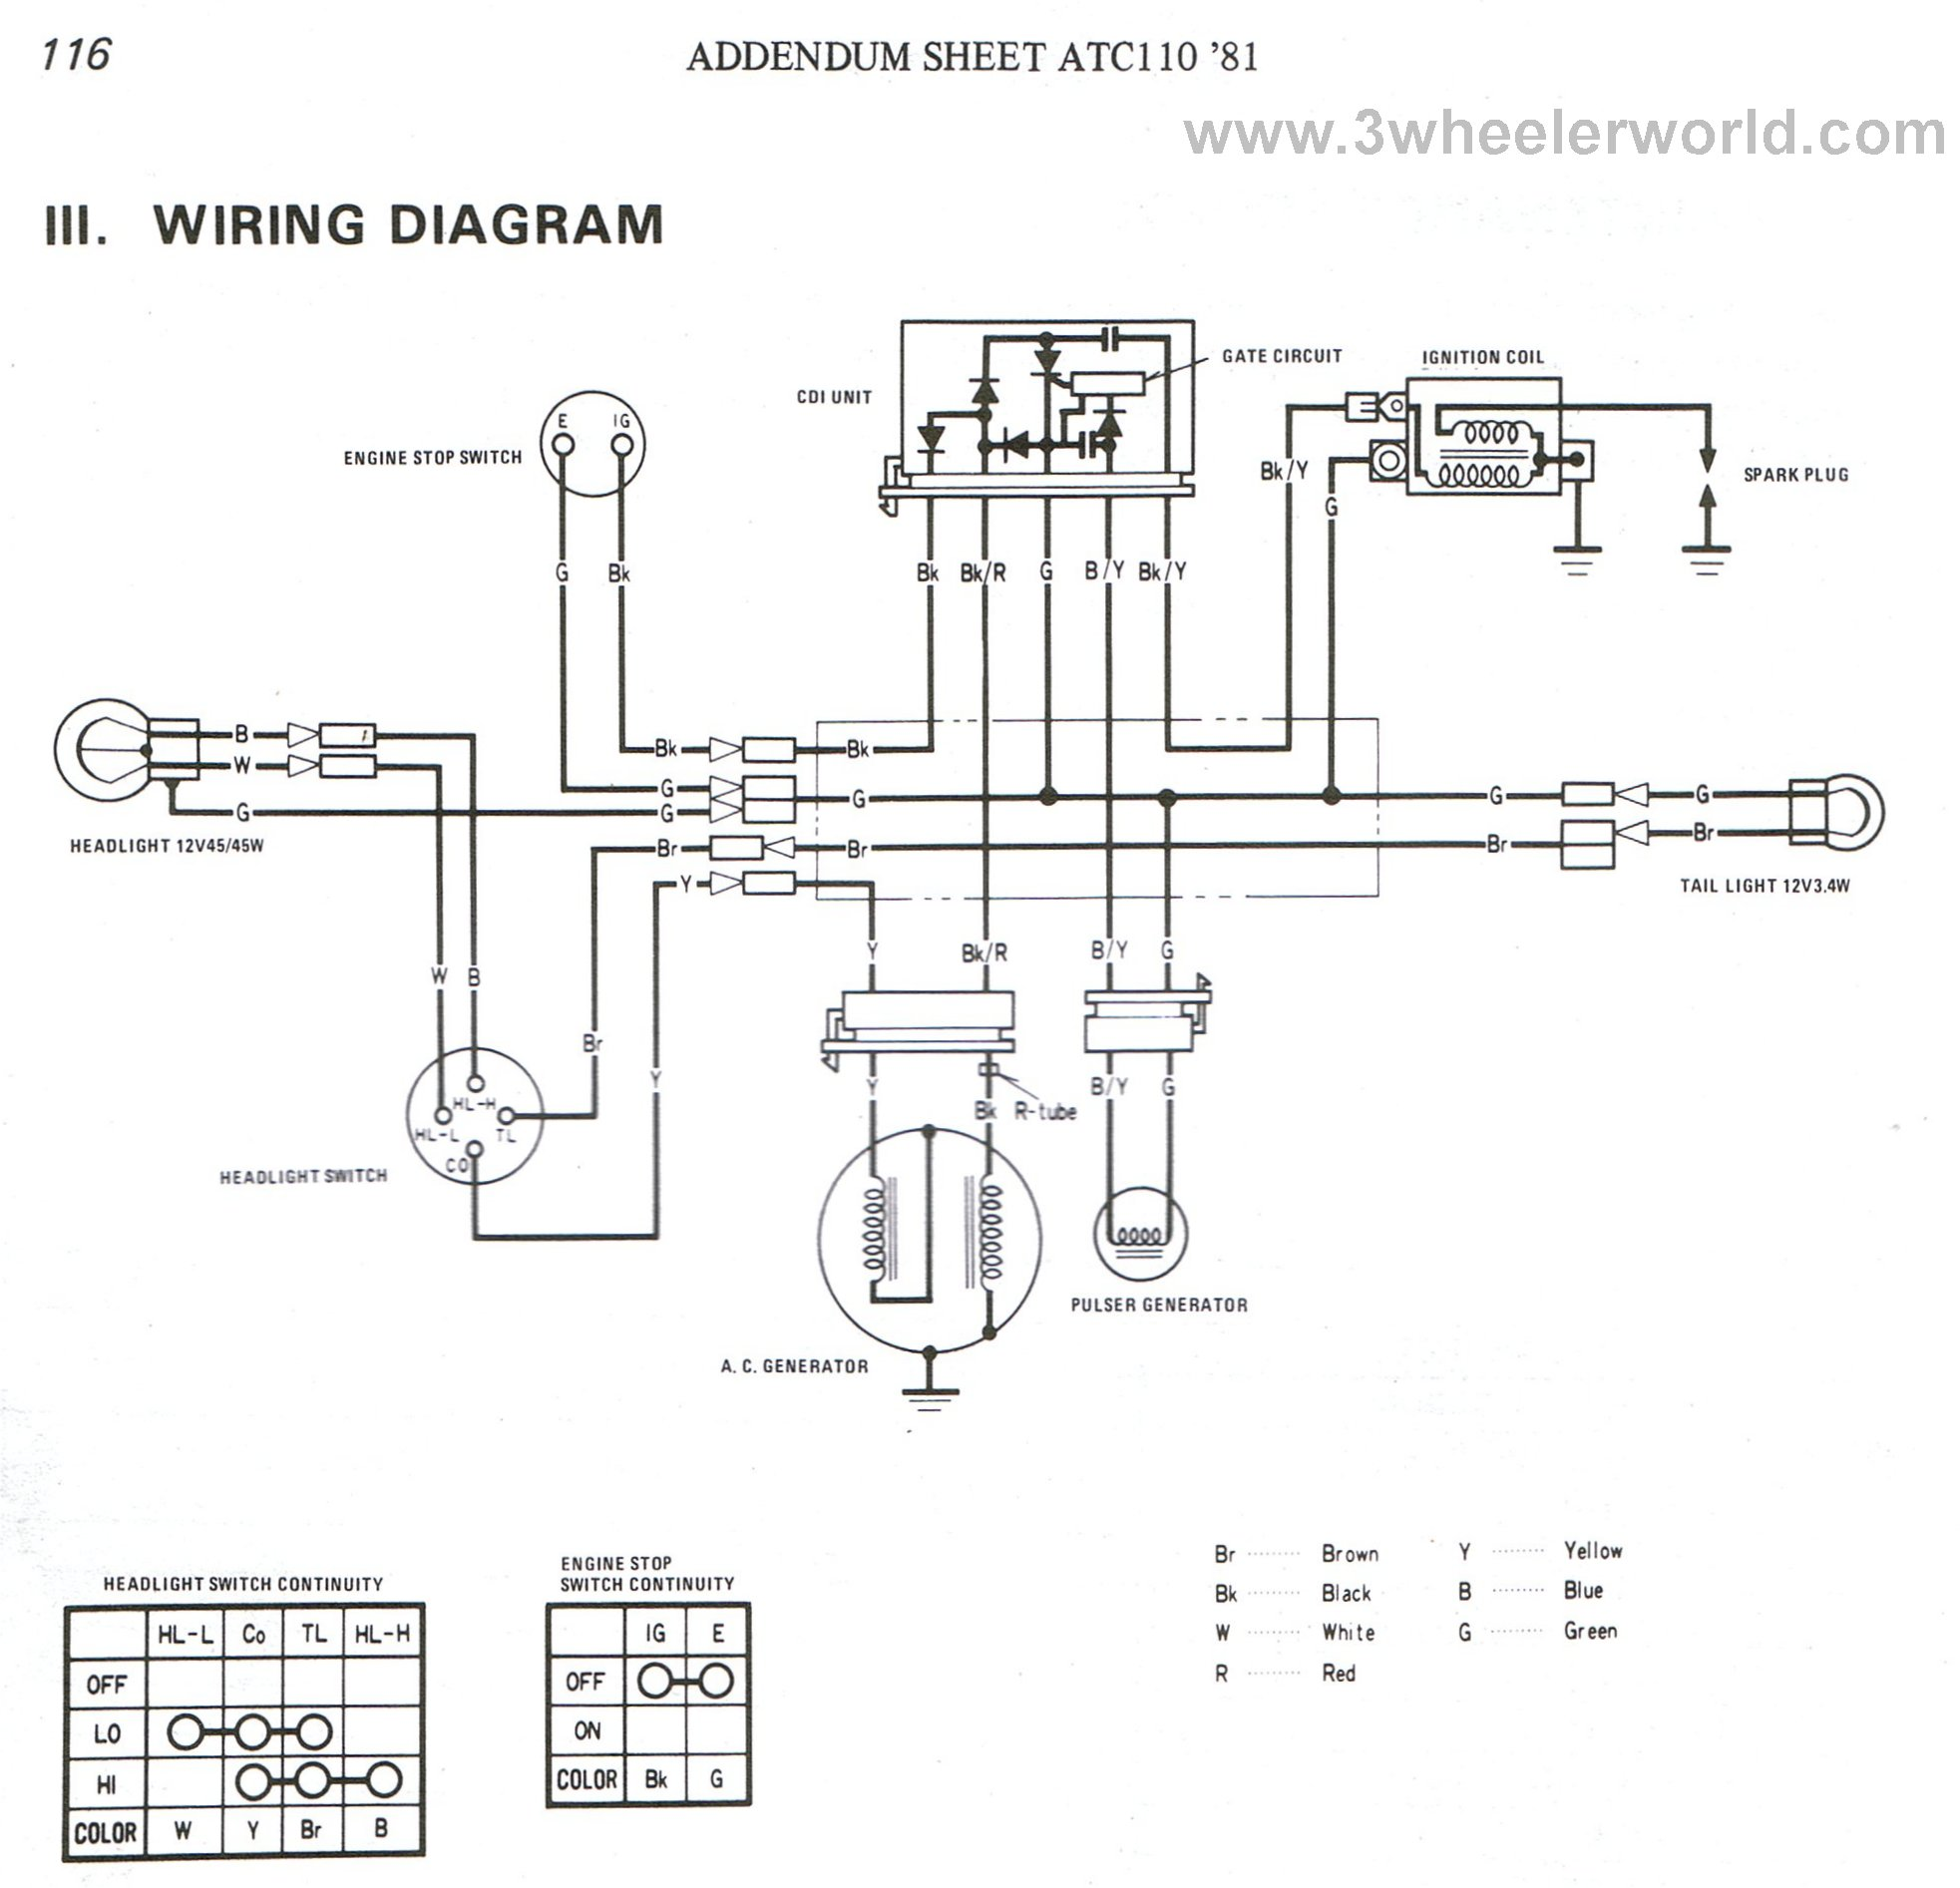 ATC110x81HM diagrams 1062765 yamaha warrior wiring diagram yamaha warrior yamaha moto 4 wiring diagram at eliteediting.co